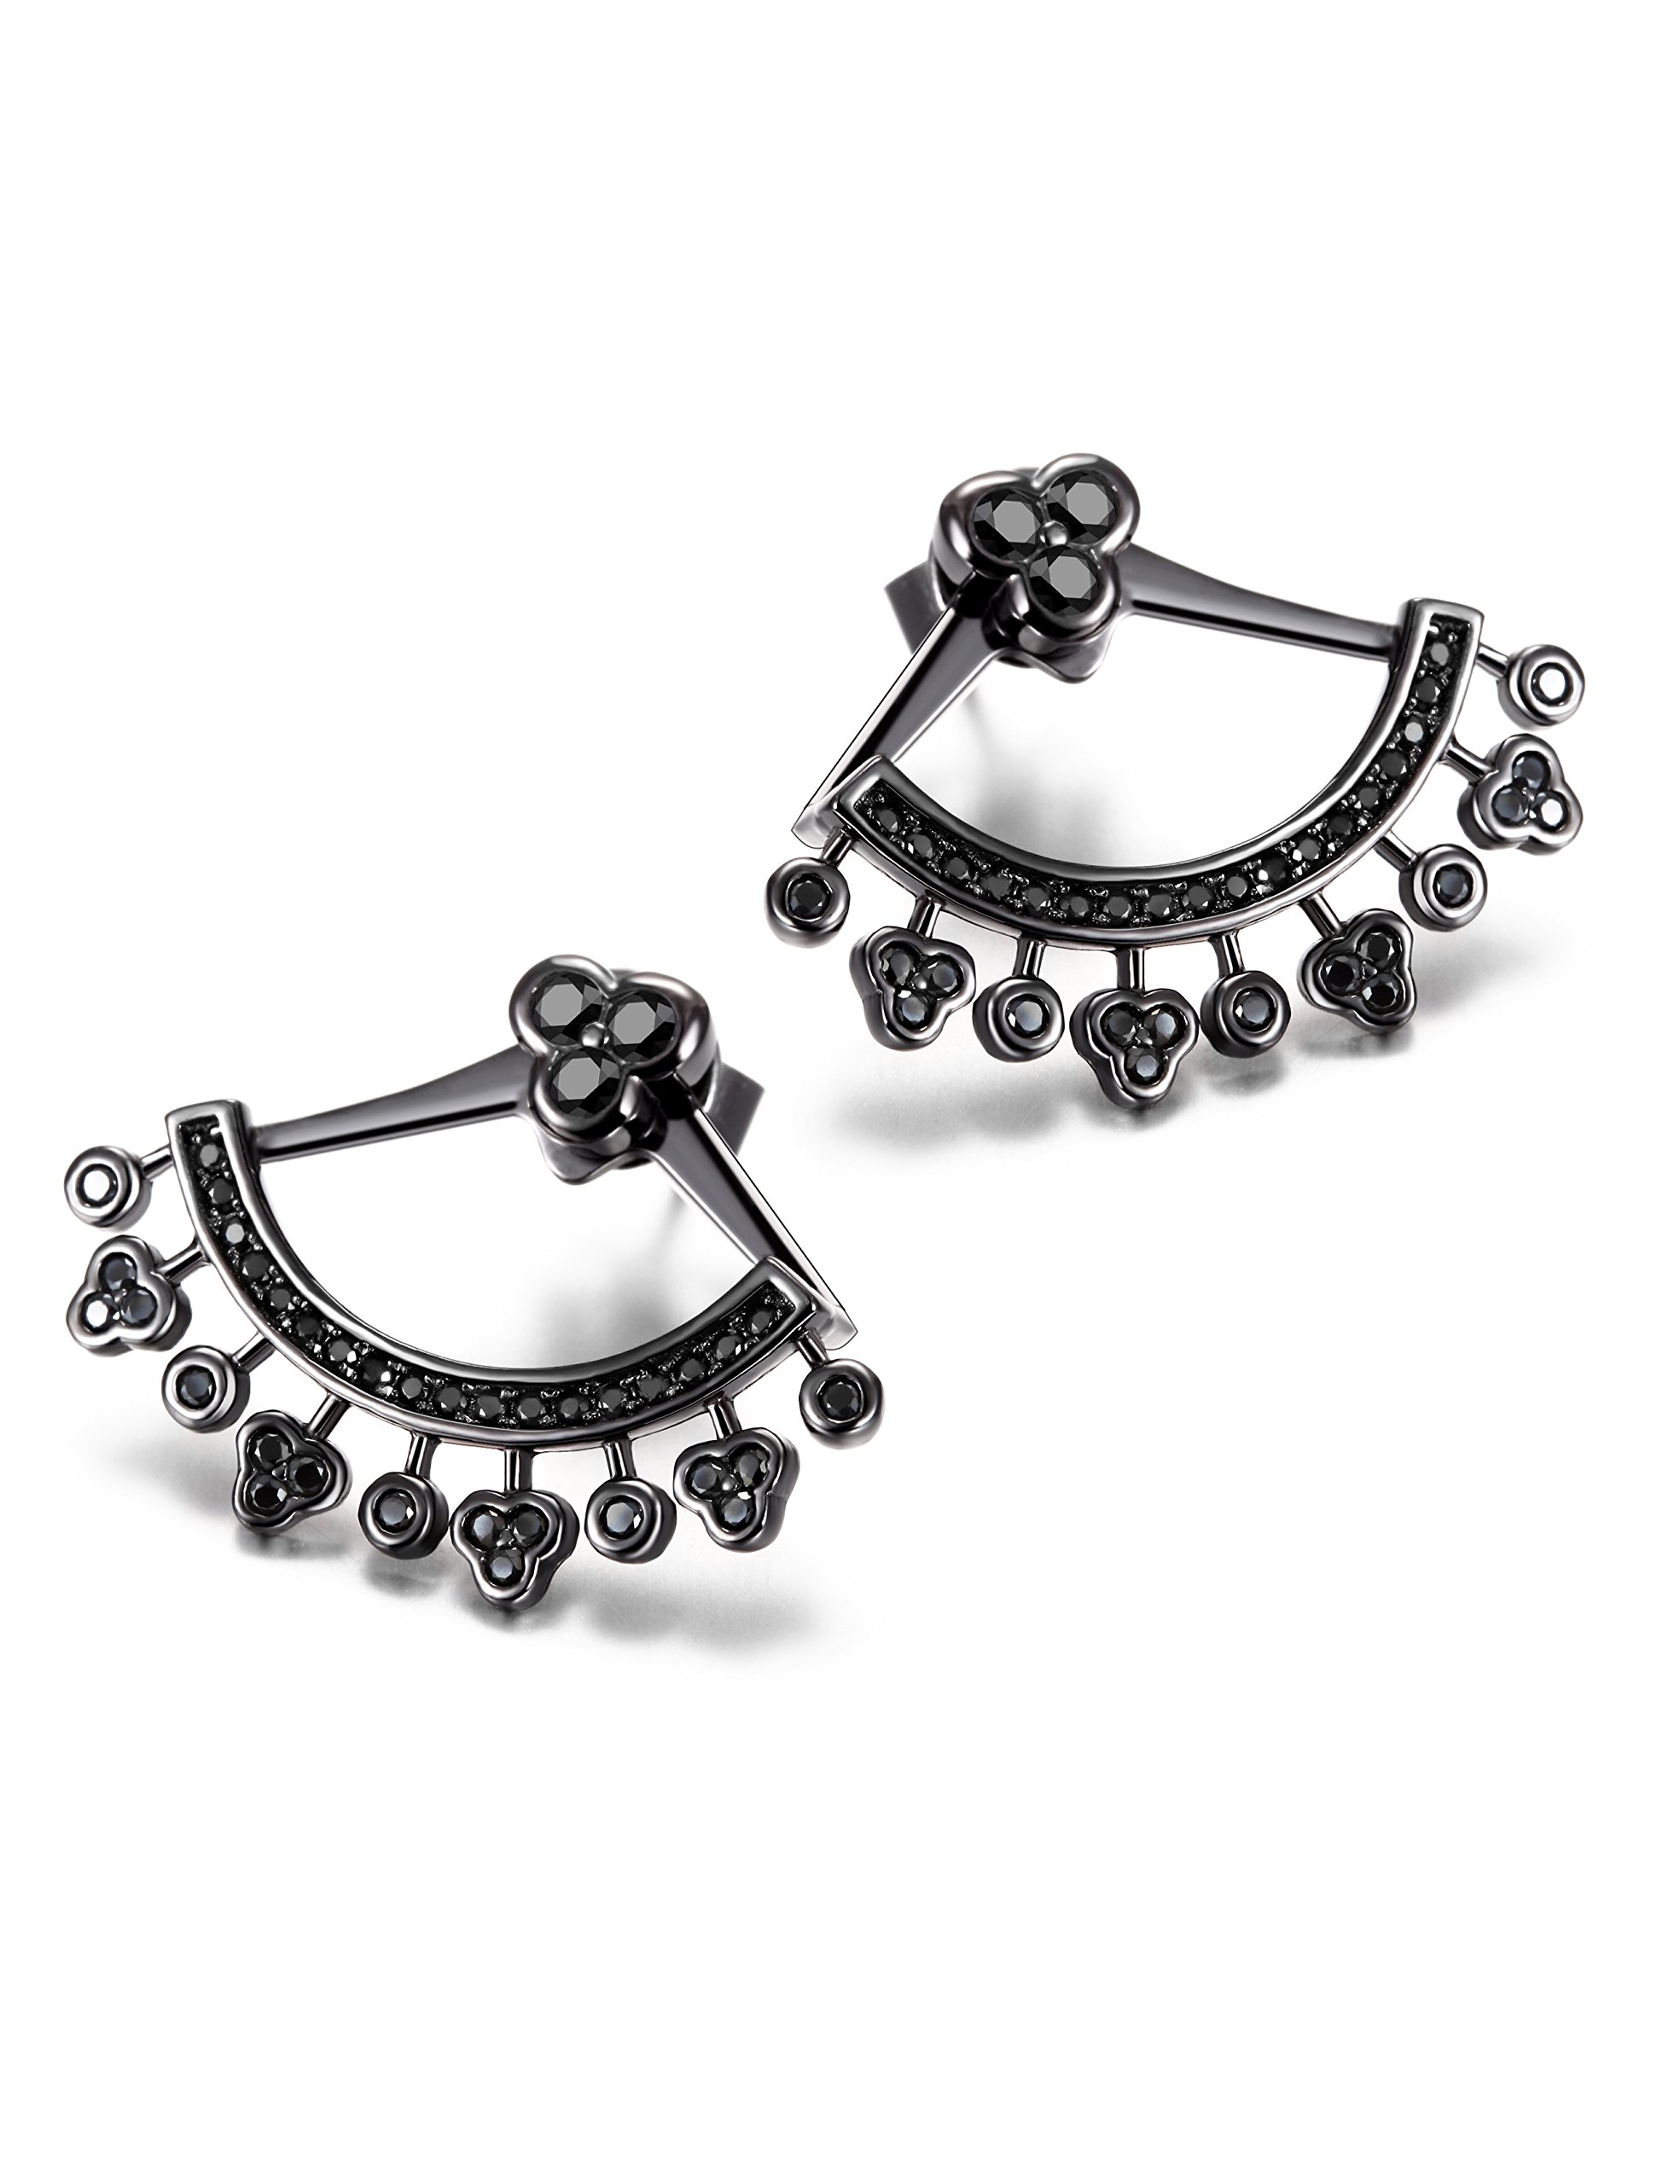 Wistic Sterling Silver Hollow Jackets Earrings Crystal Classics Stud Cuff Earrings For Women Girls(black)